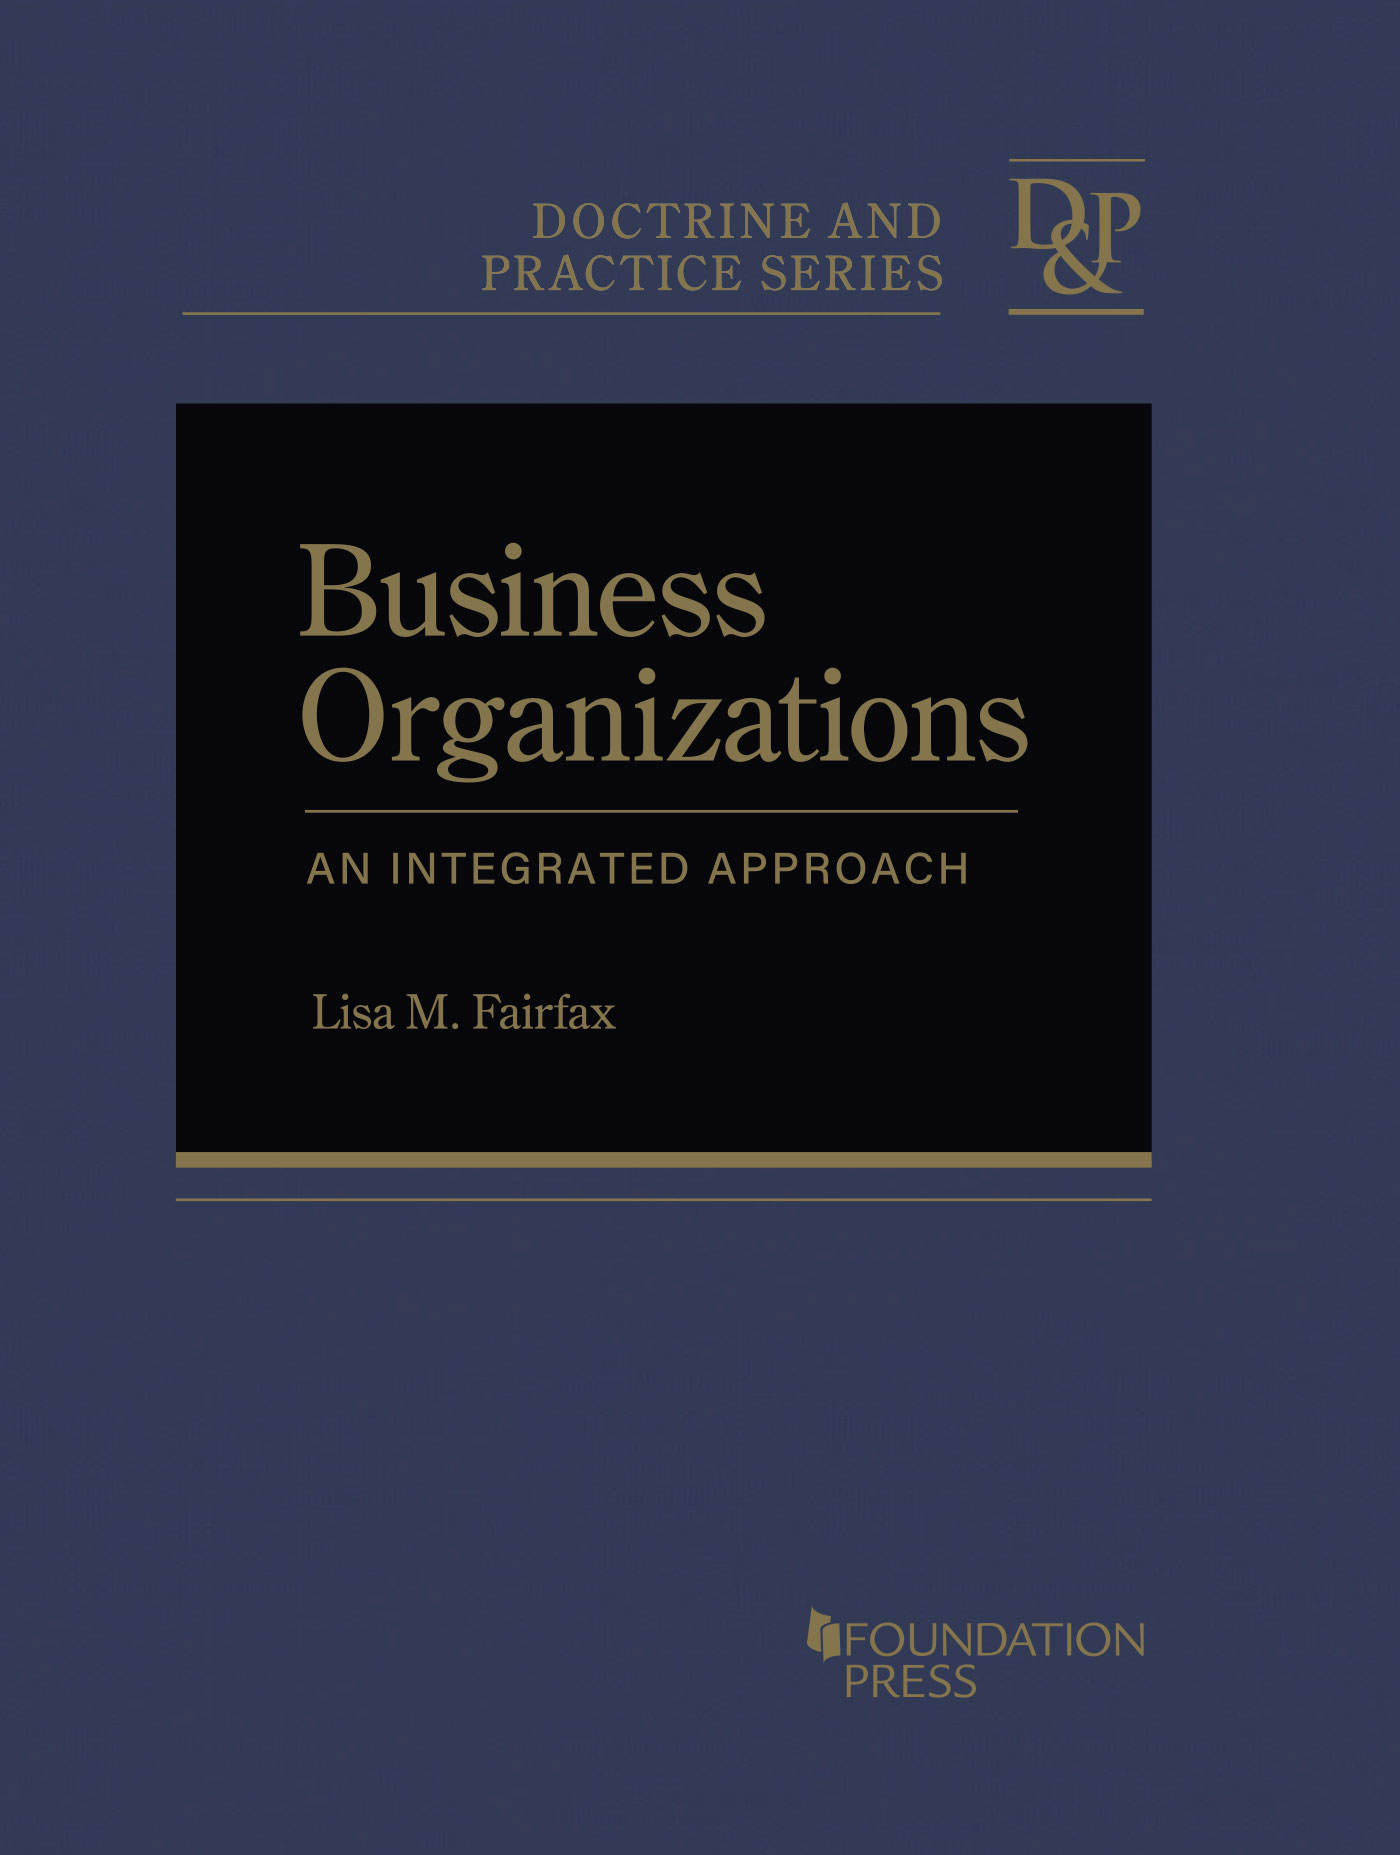 Fairfax's Business Organizations: An Integrated Approach (Doctrine and Practice Series)